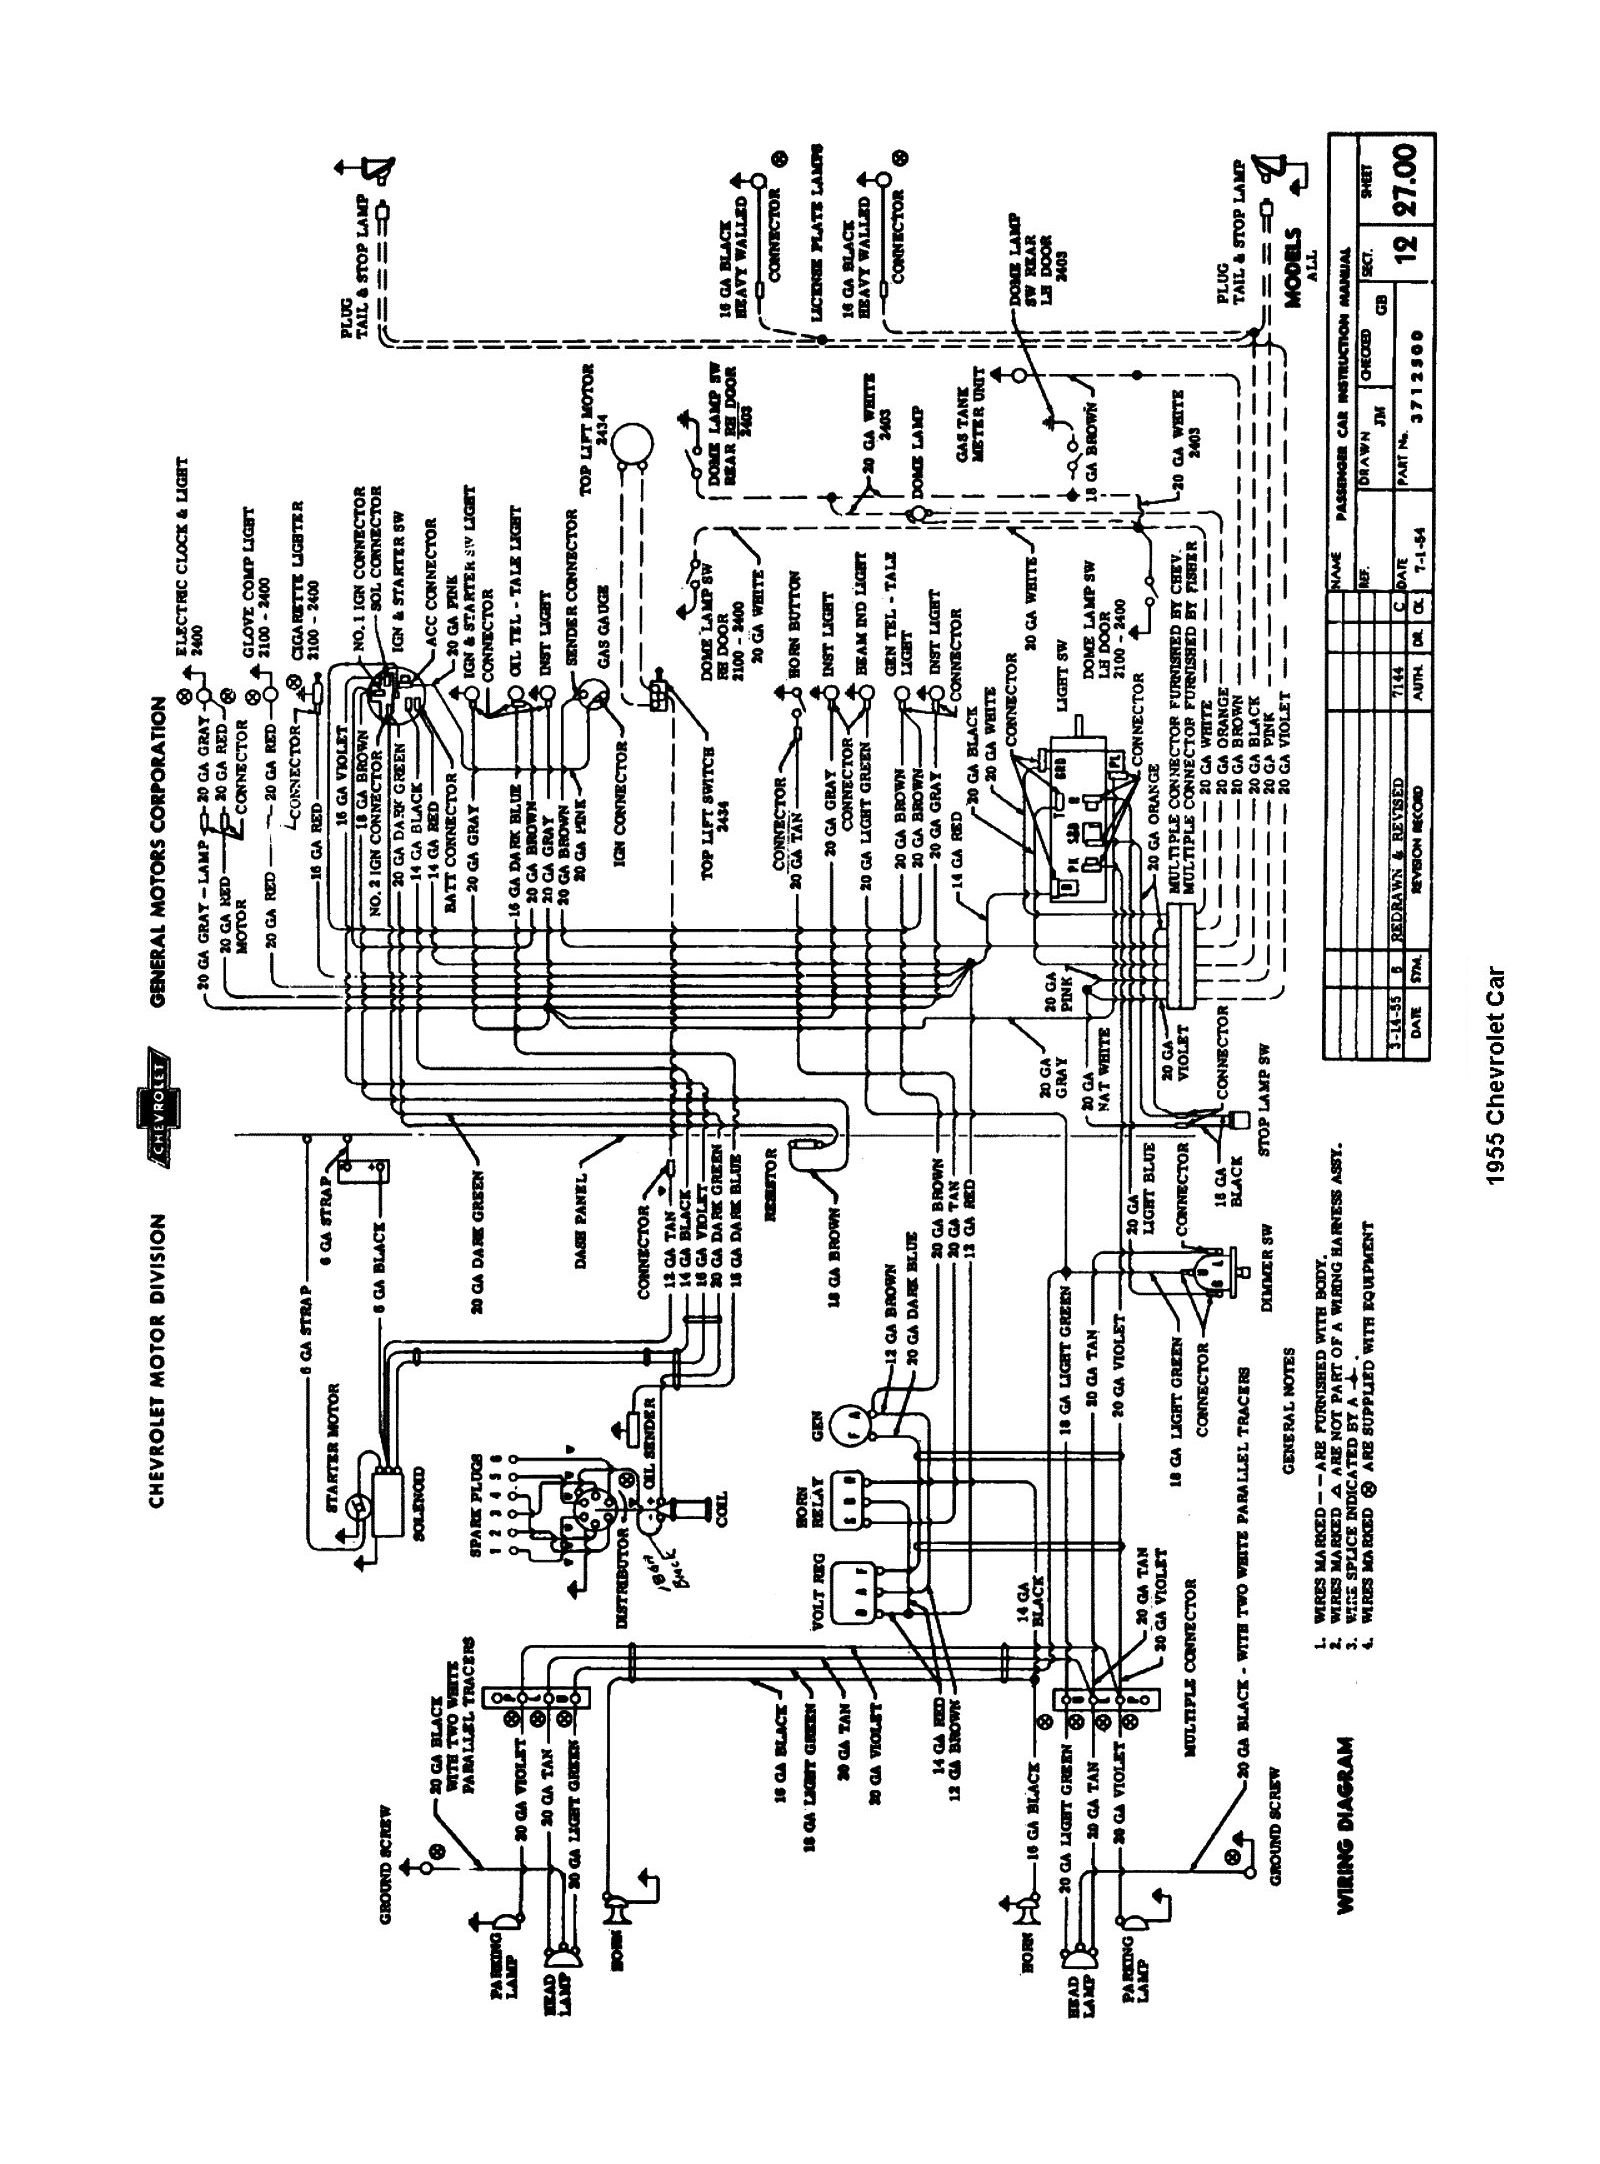 Dodge Ram Wiring Diagram Http Wwwjustanswercom Dodge 58mxqdodge